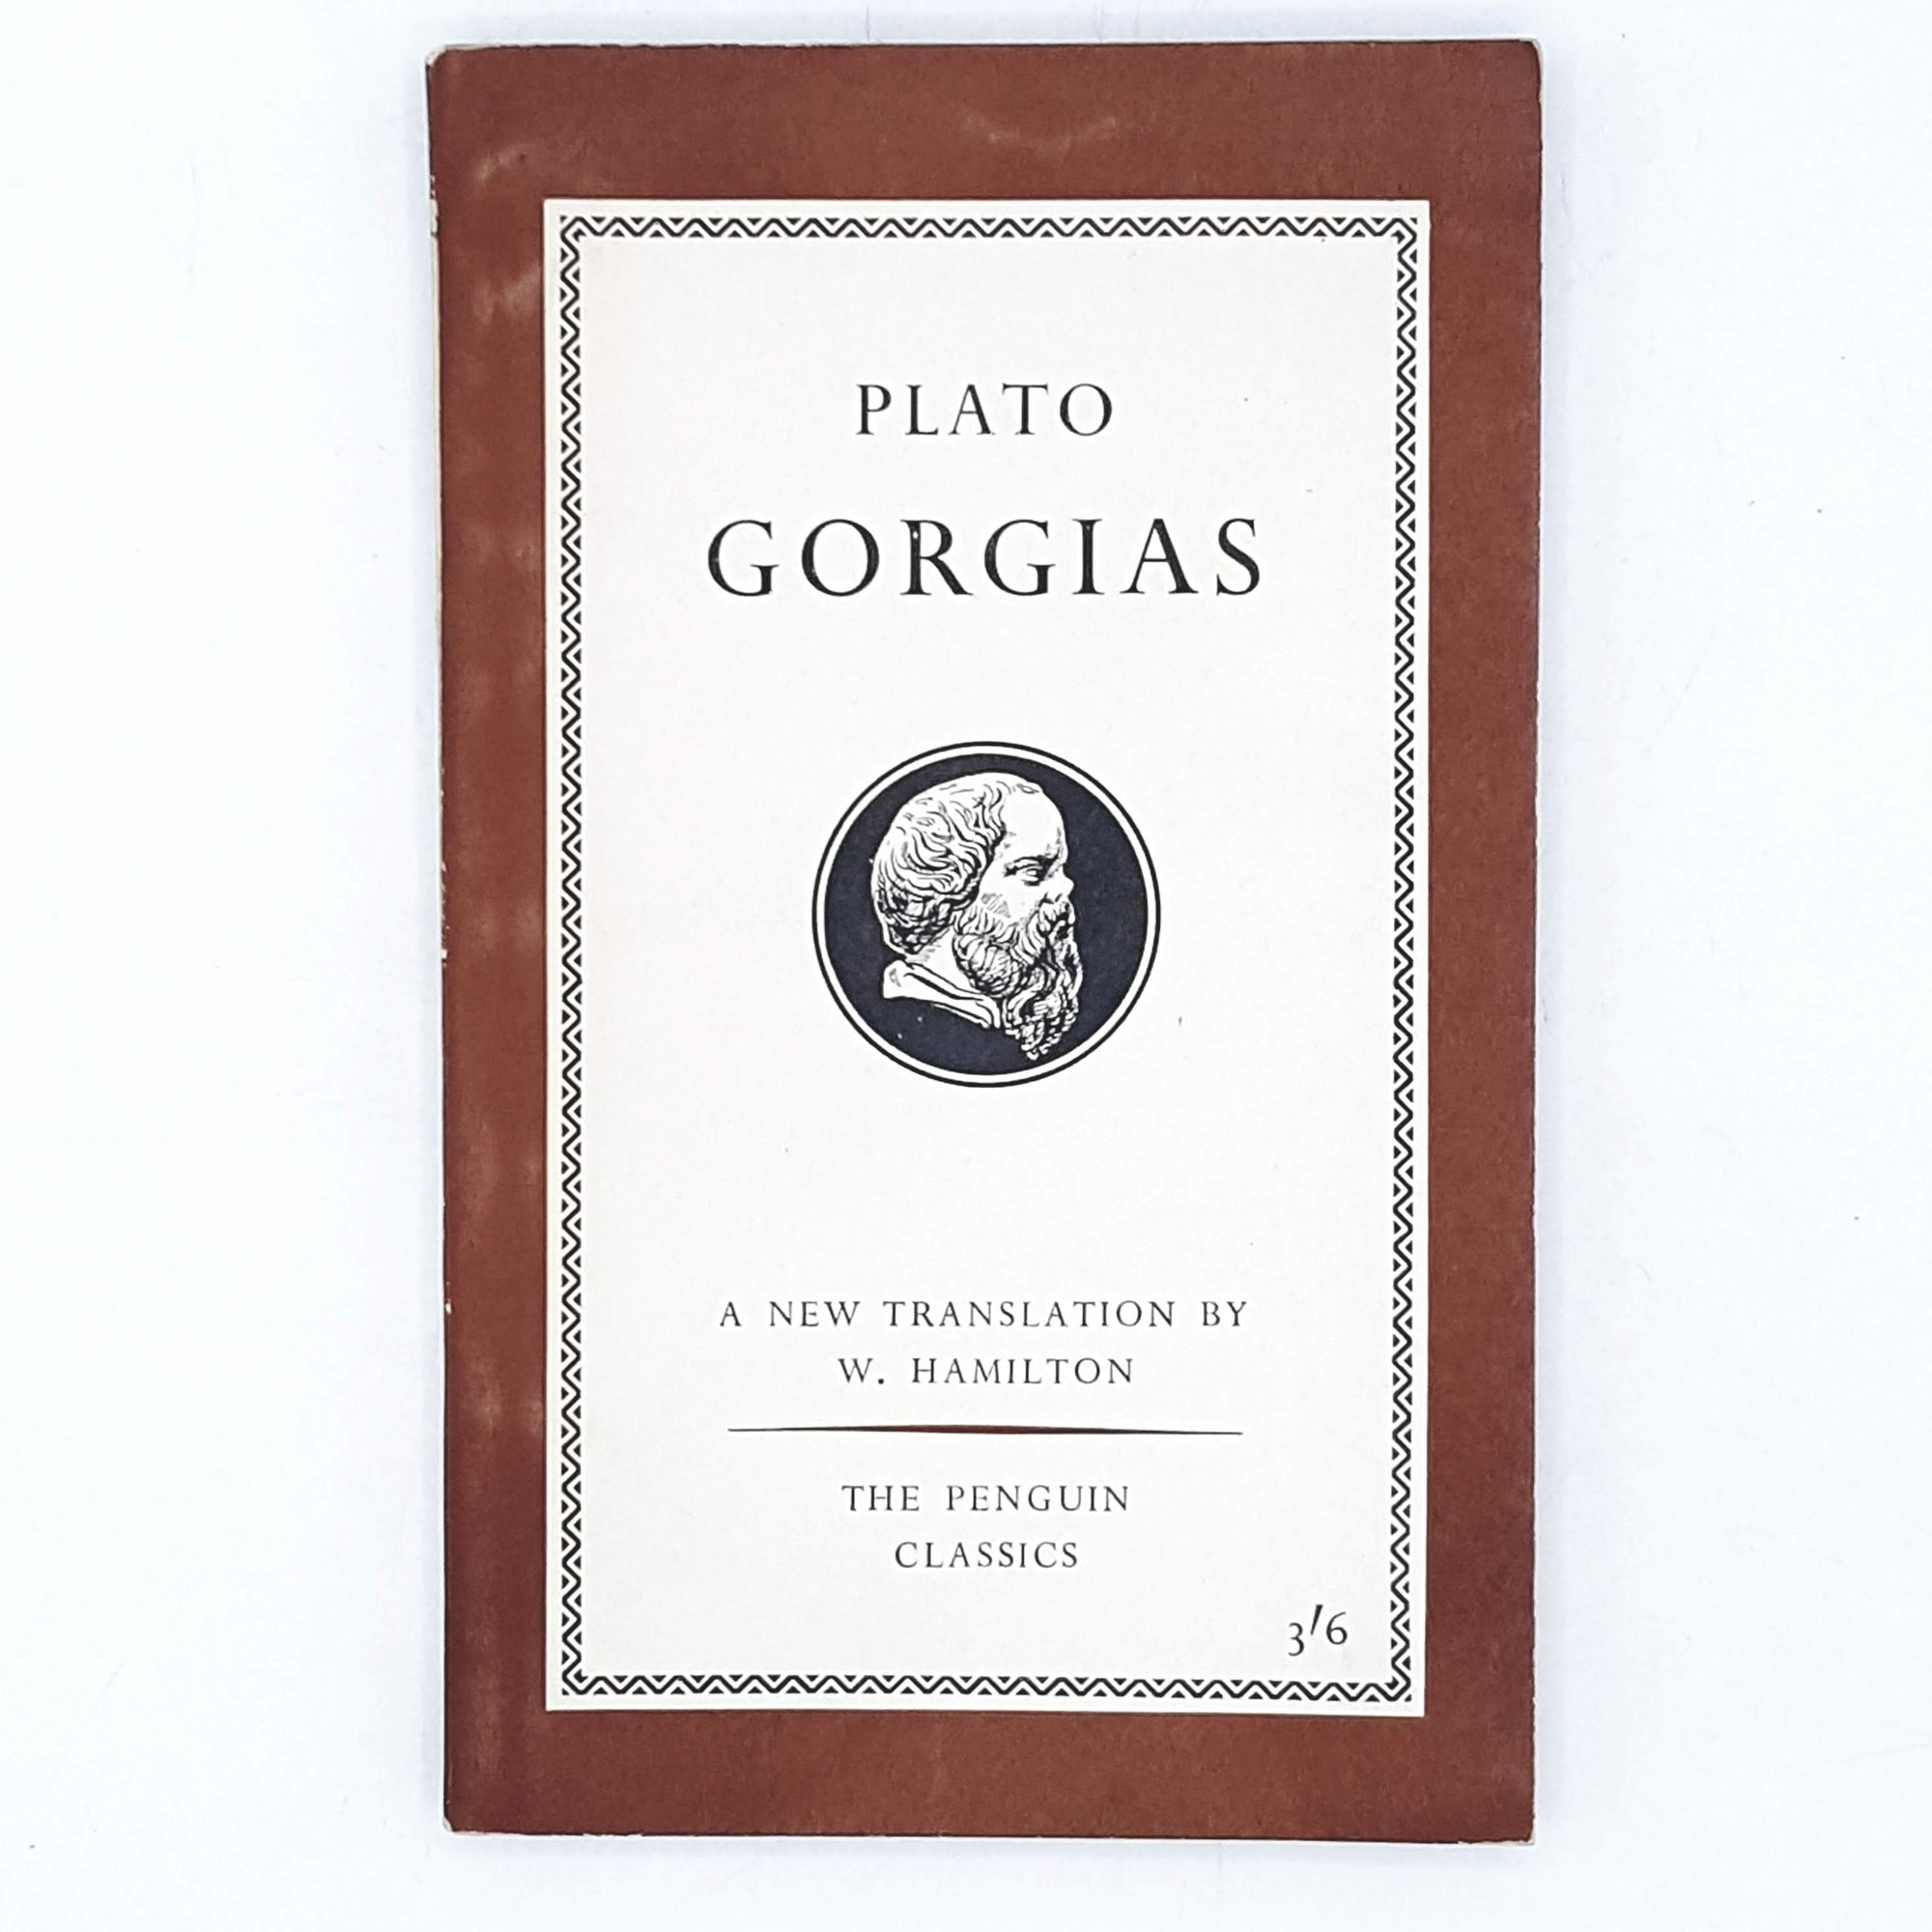 plato-gorgias-brown-vintage-penguin-classic-history-philosophy